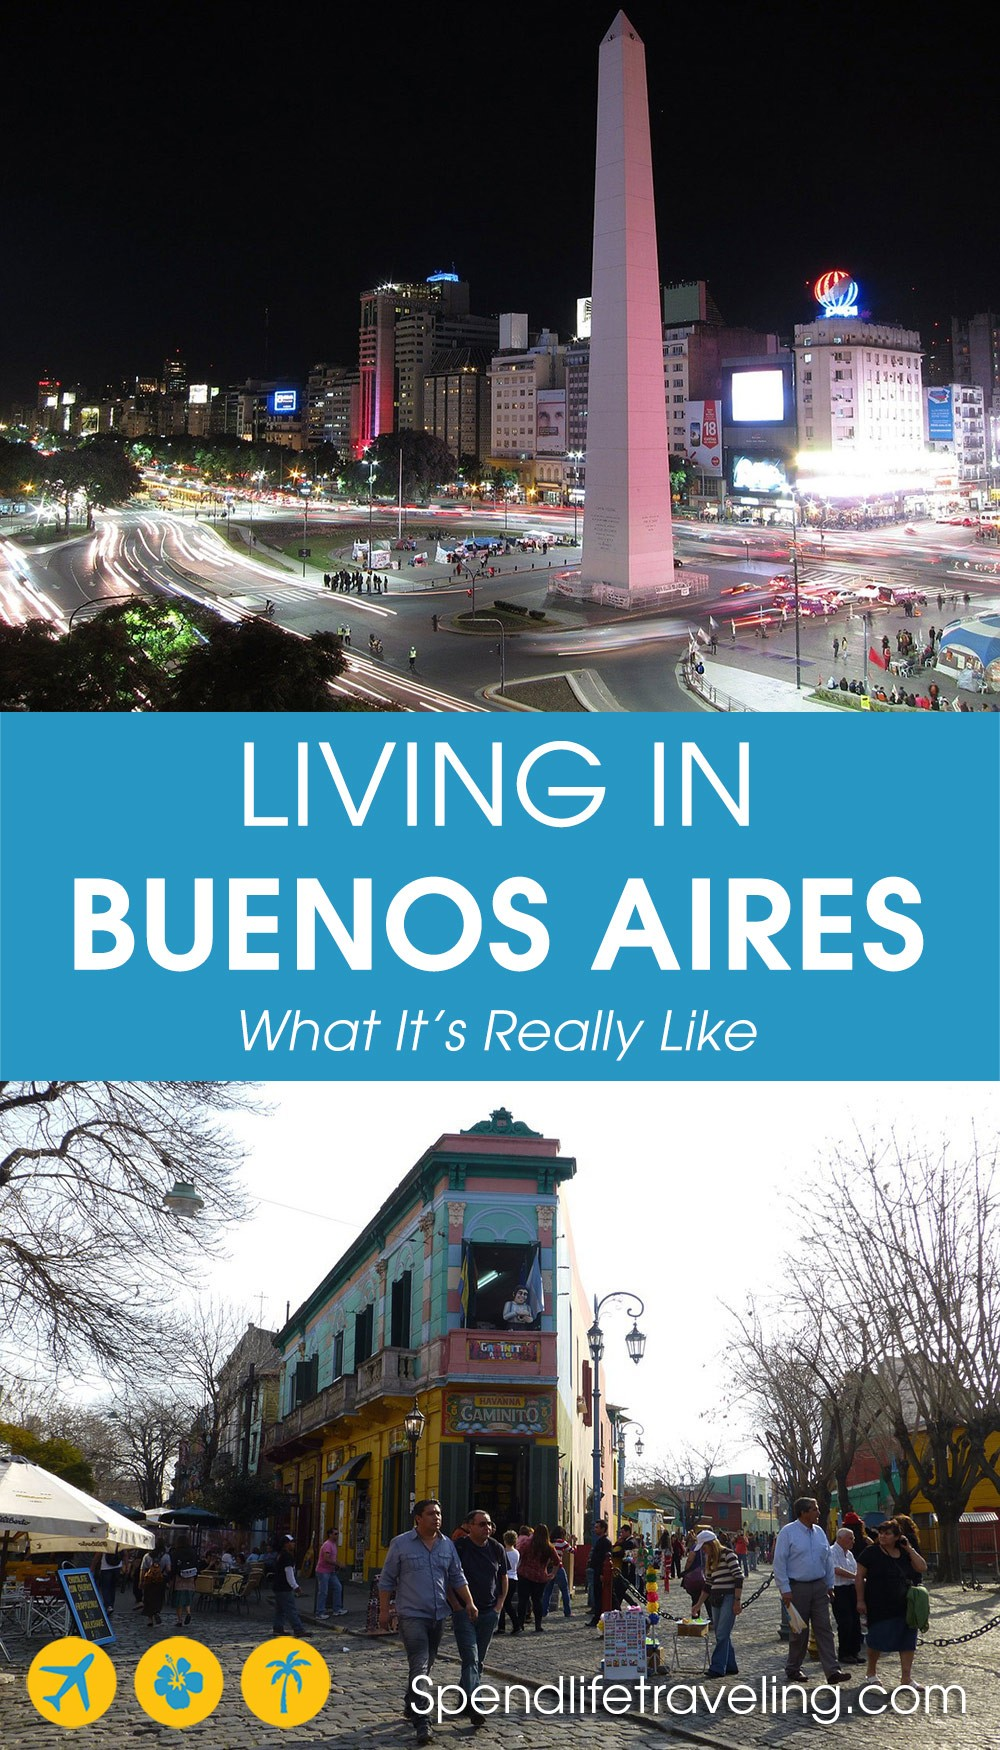 life in Buenos Aires as an expat